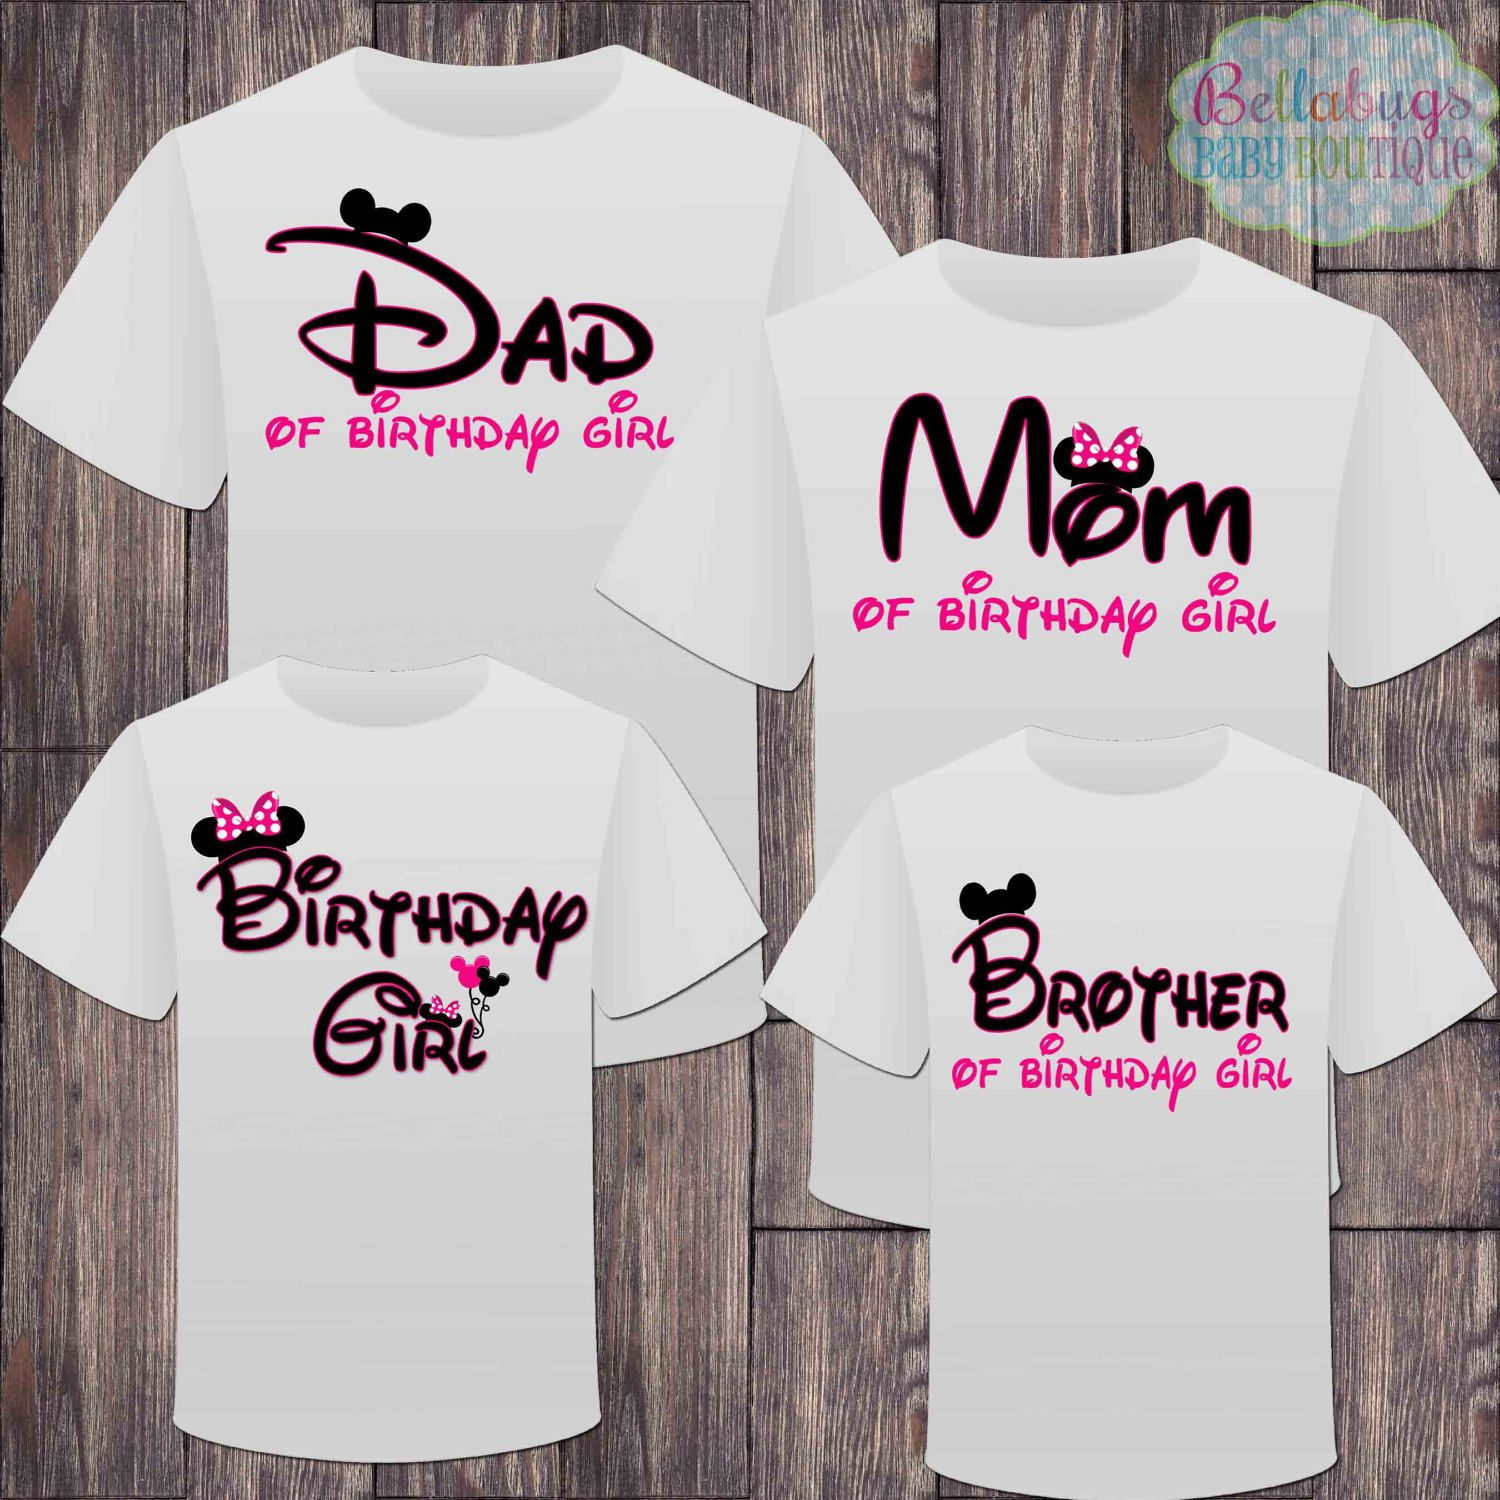 4cf5849215d2 Matching Disney Family Girl Birthday Tshirts - Mickey Minnie Mouse Birthday  Girl - Disney Inspired - Matching Birthday Shirts - Minnie Mouse by ...